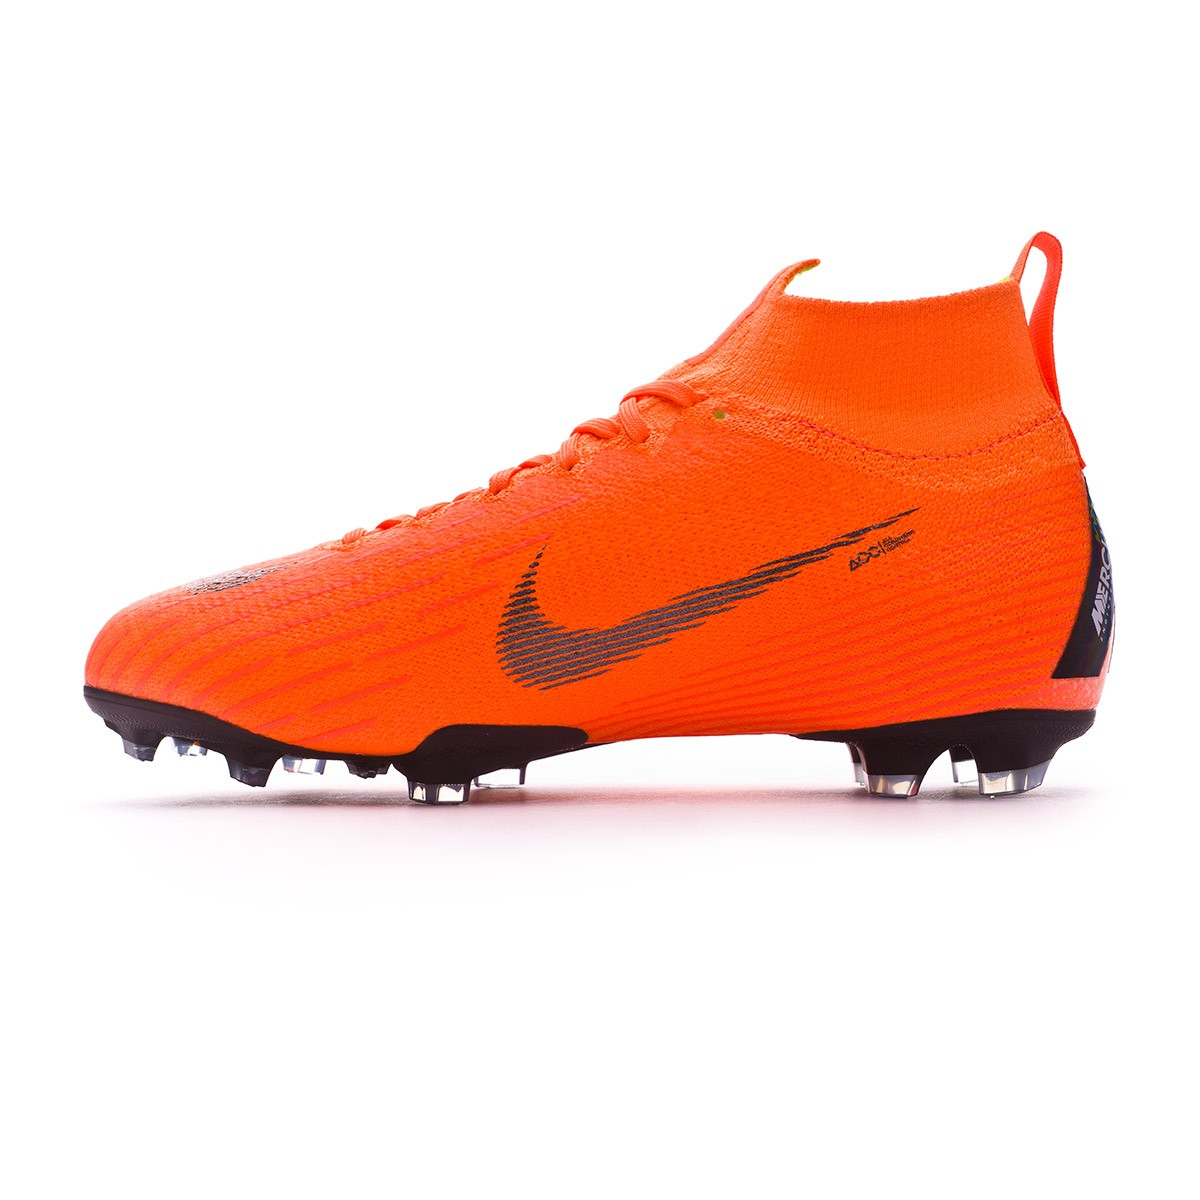 e6cb26d61 Football Boots Nike Kids Mercurial Superfly VI Elite FG Total  orange-Black-Volt - Football store Fútbol Emotion